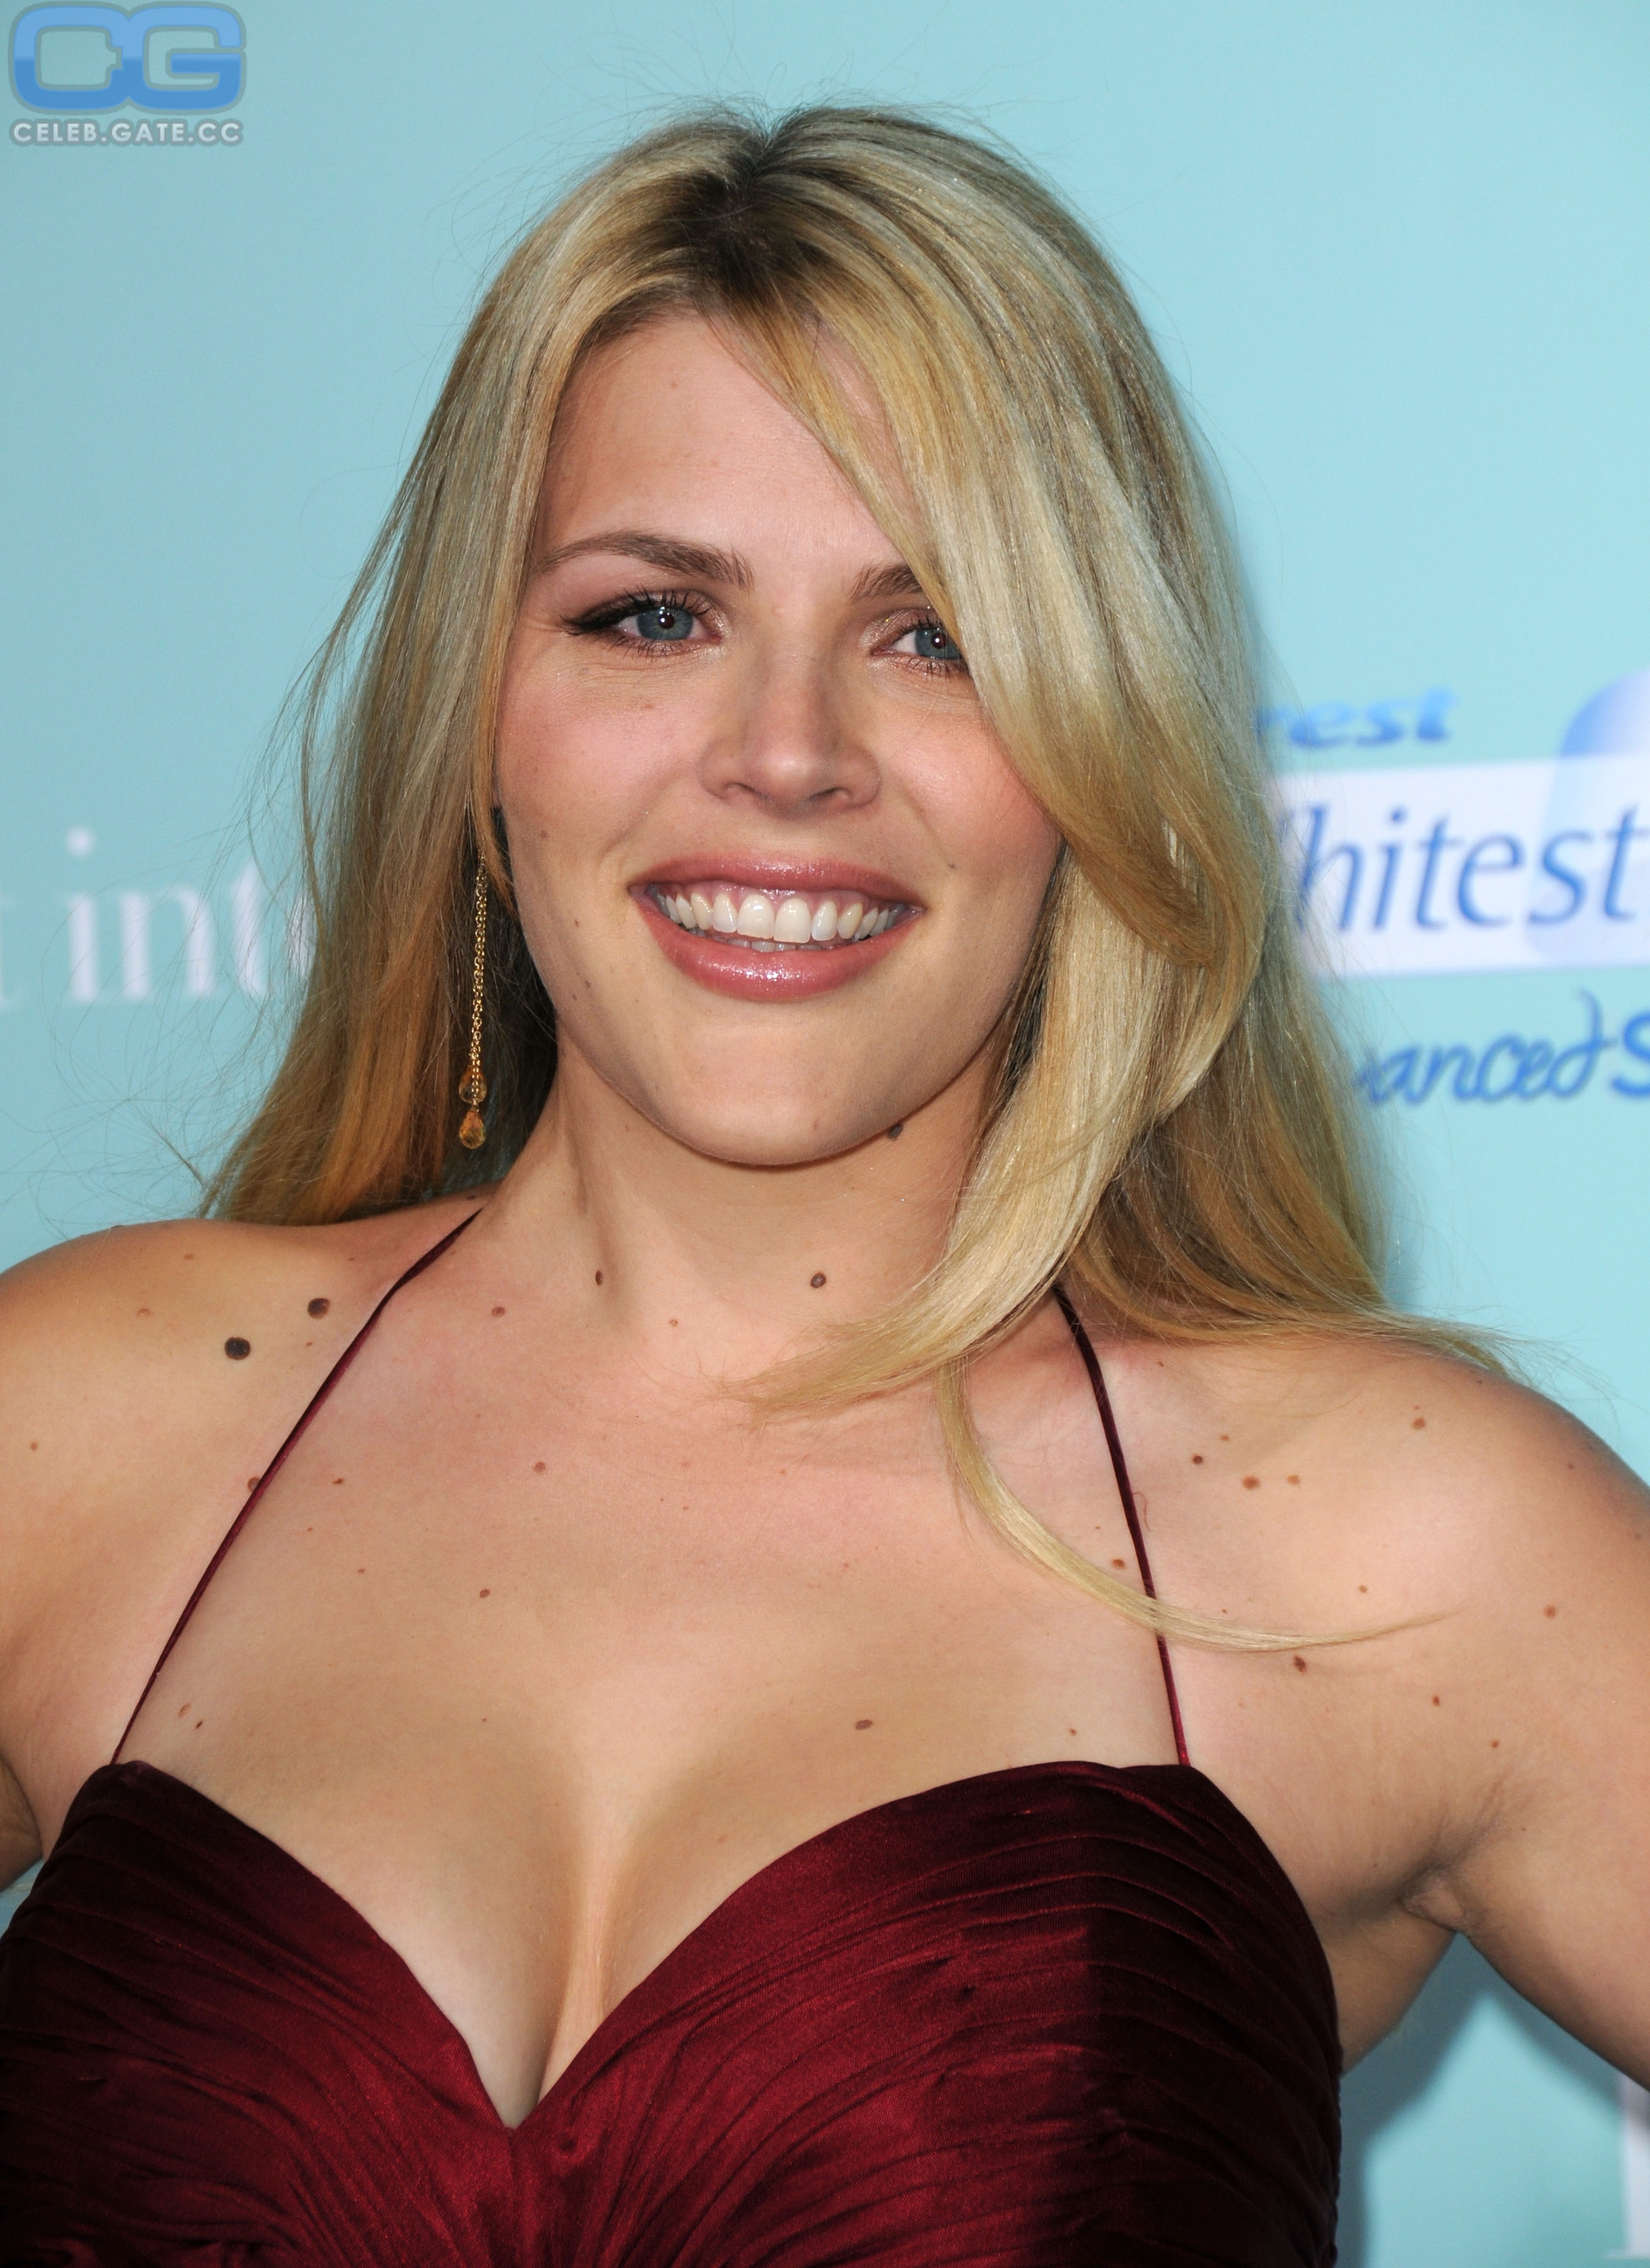 Busy Philipps Nudes photo 12